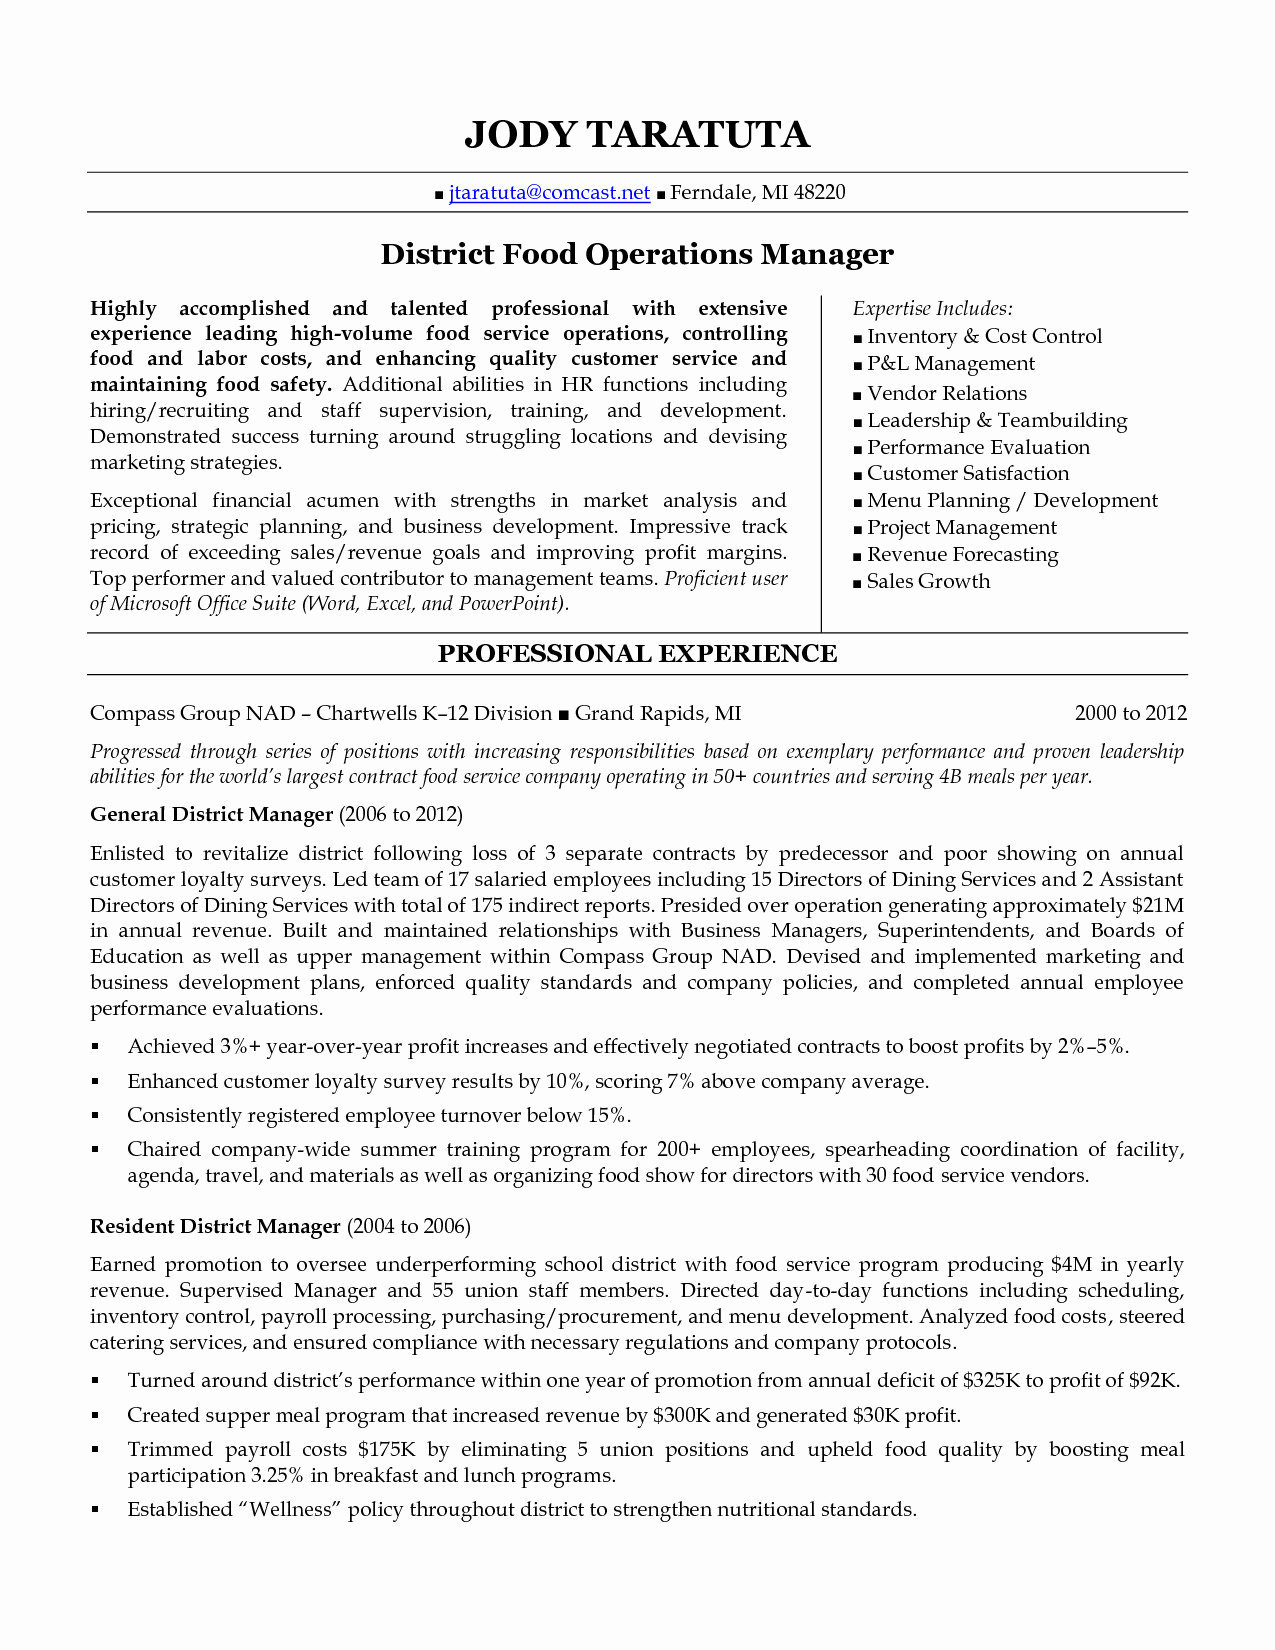 Restaurant Manager Resume Samples Pdf Elegant District Manager Resume